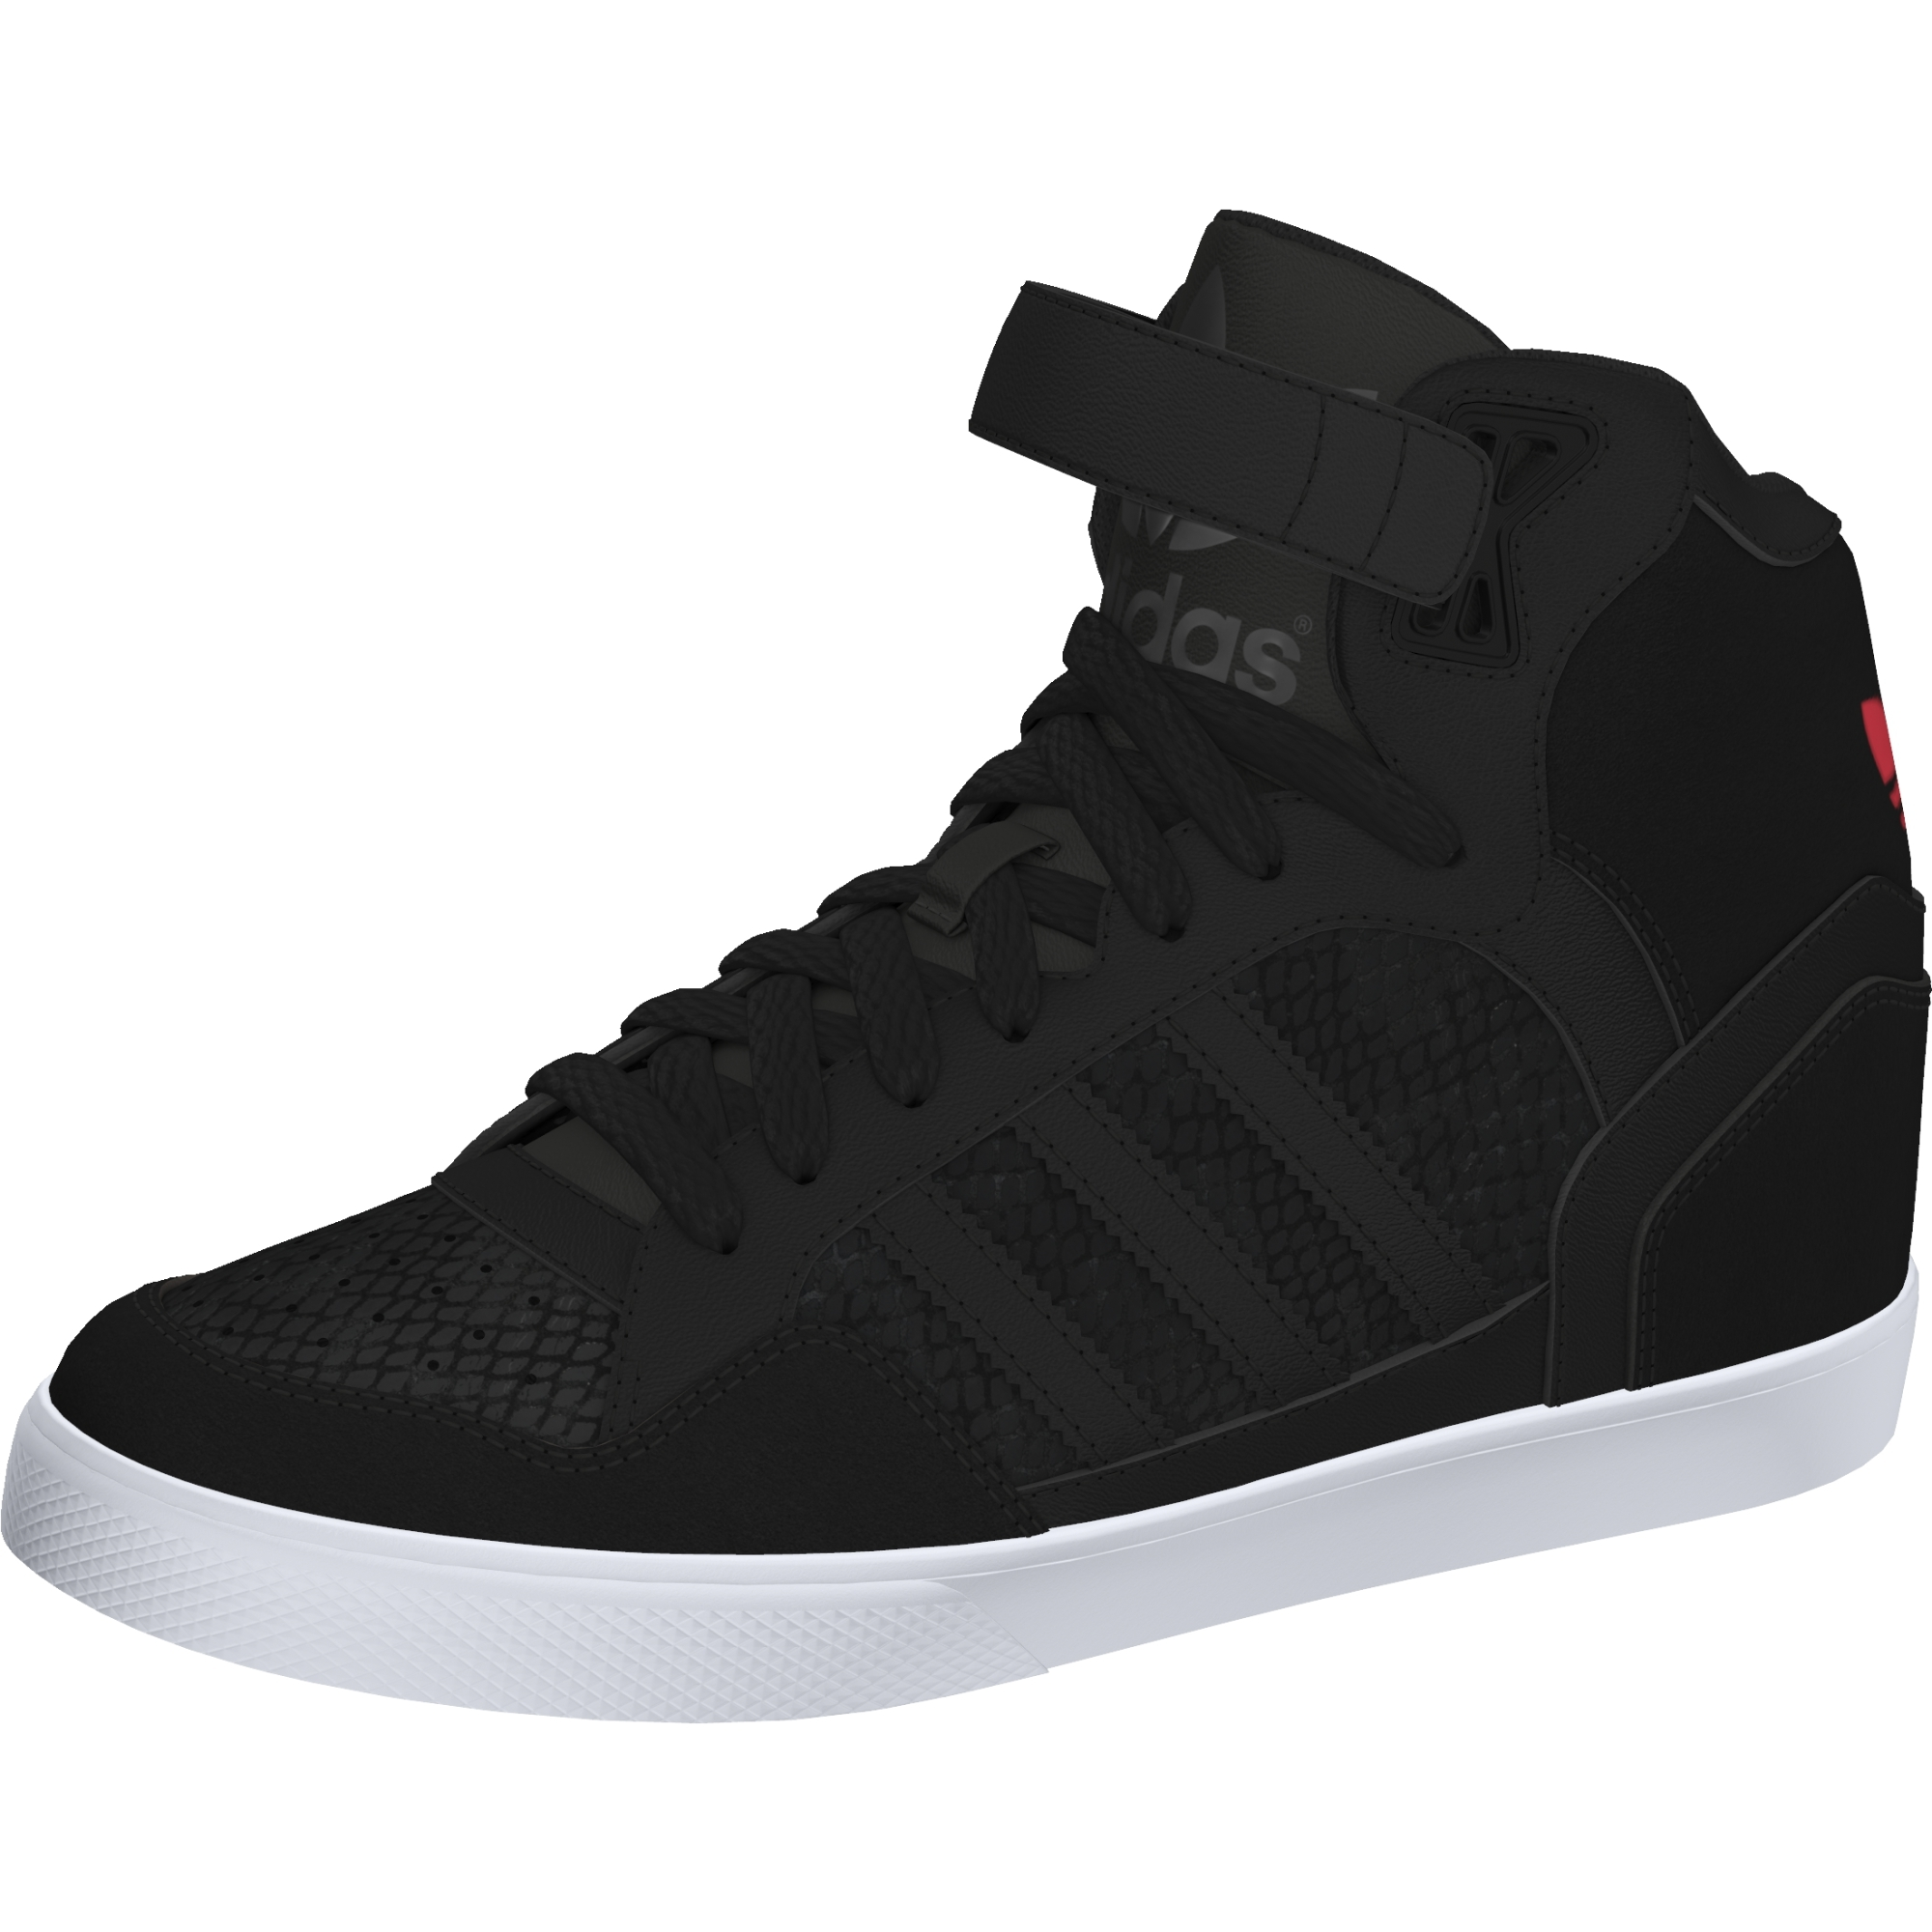 Adidas Extaball Up W - B35354